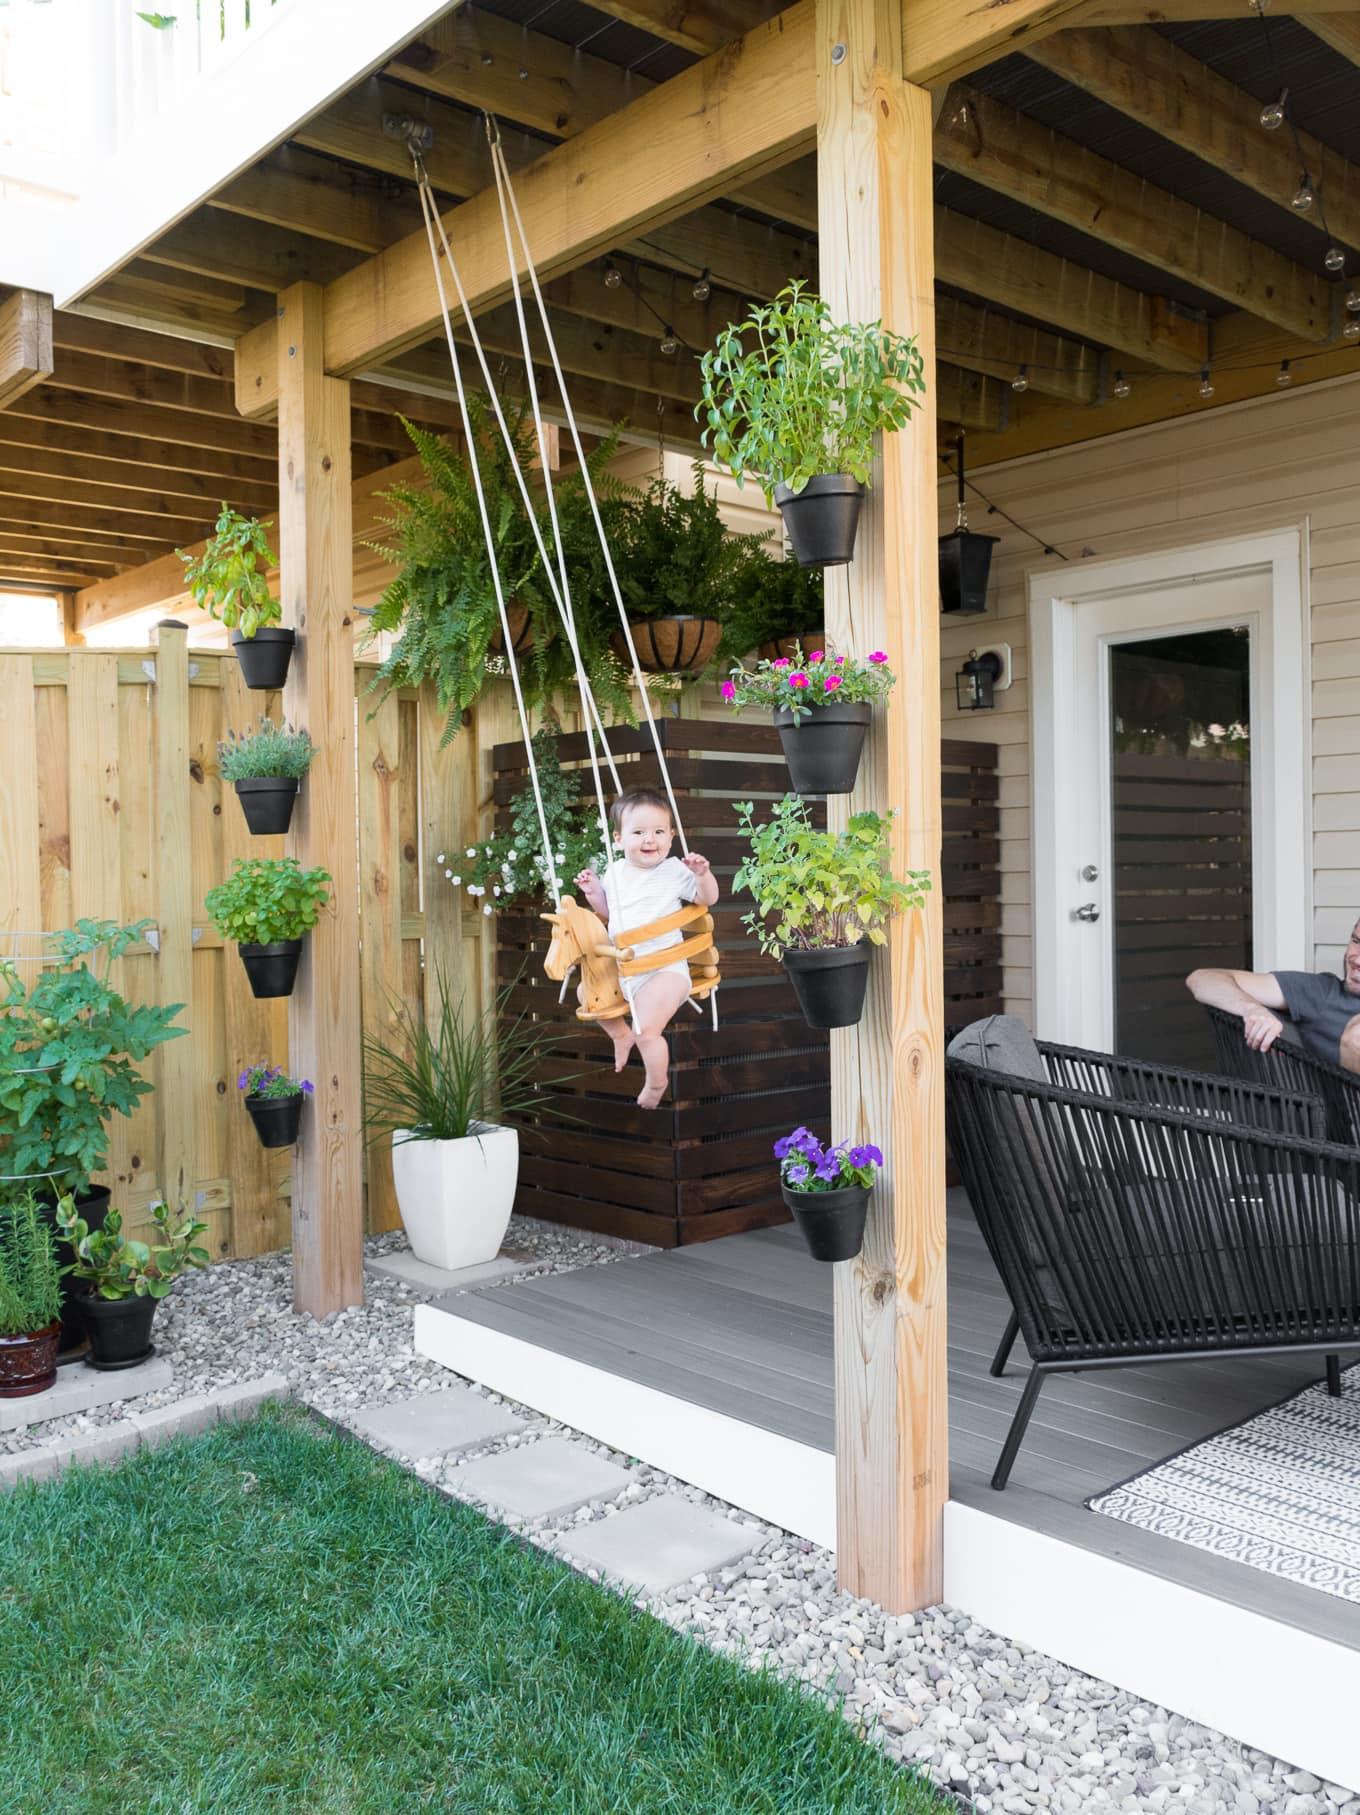 Our modern minimal townhouse for a family of three (and two kitties!). Looking for townhouse backyard ideas? Check out our home tour. #townhomes #townhouse #townhouseideas #kidfriendlyhome #townhouseinspiration #smallbackyardinspiration #smallbackyarddesign #townhousebackyard